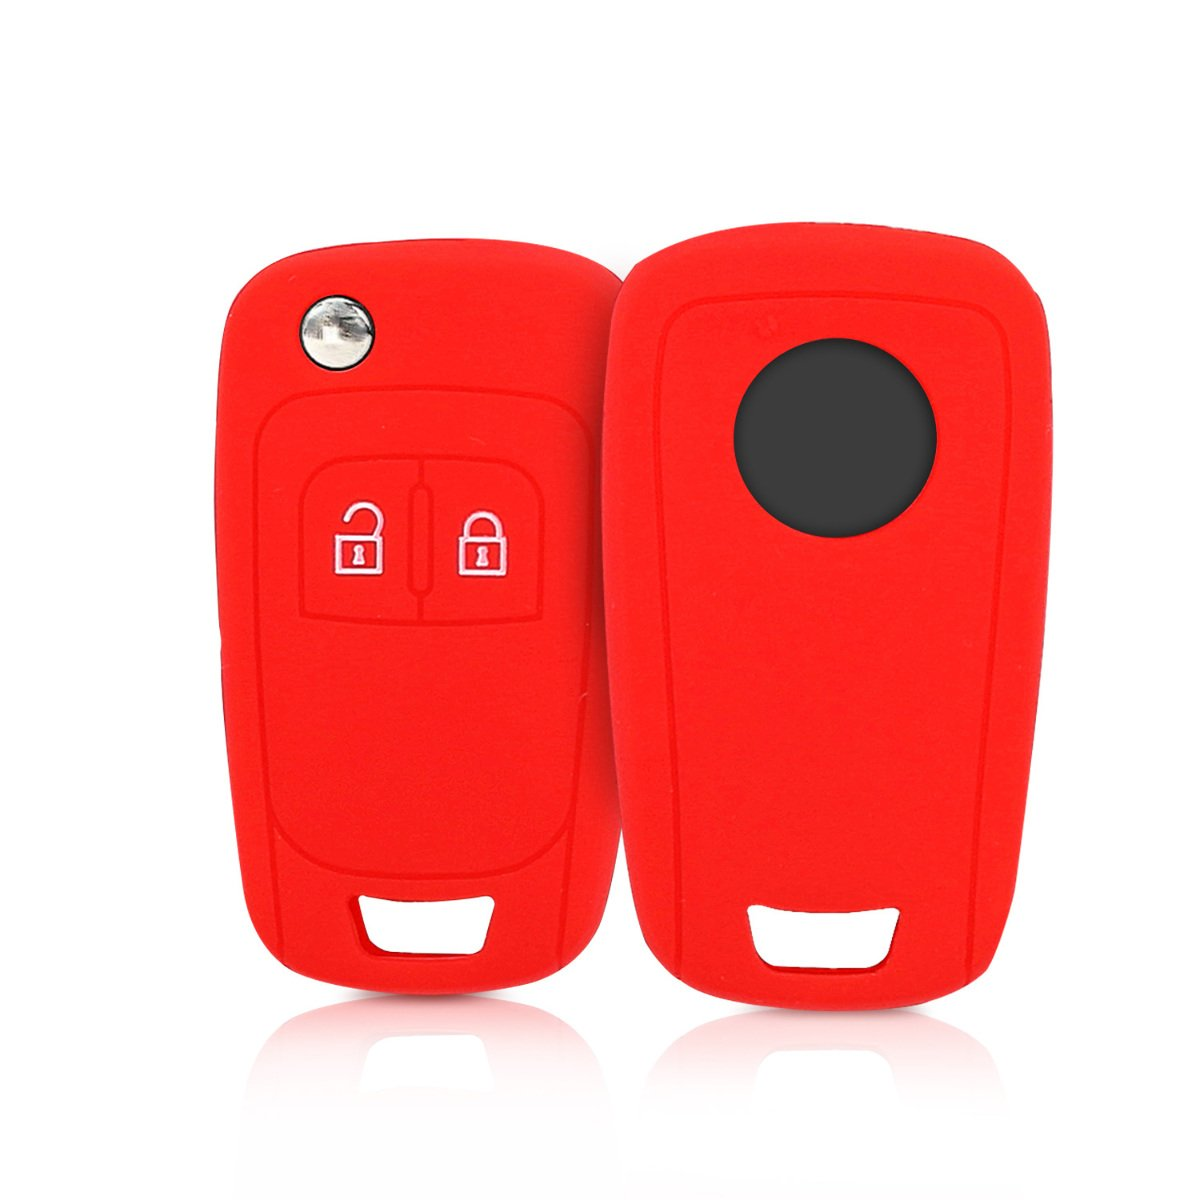 Silicone Protective Key Fob Cover for Opel 2 Button Car Flip Key kwmobile Car Key Cover for Opel Black//White//White